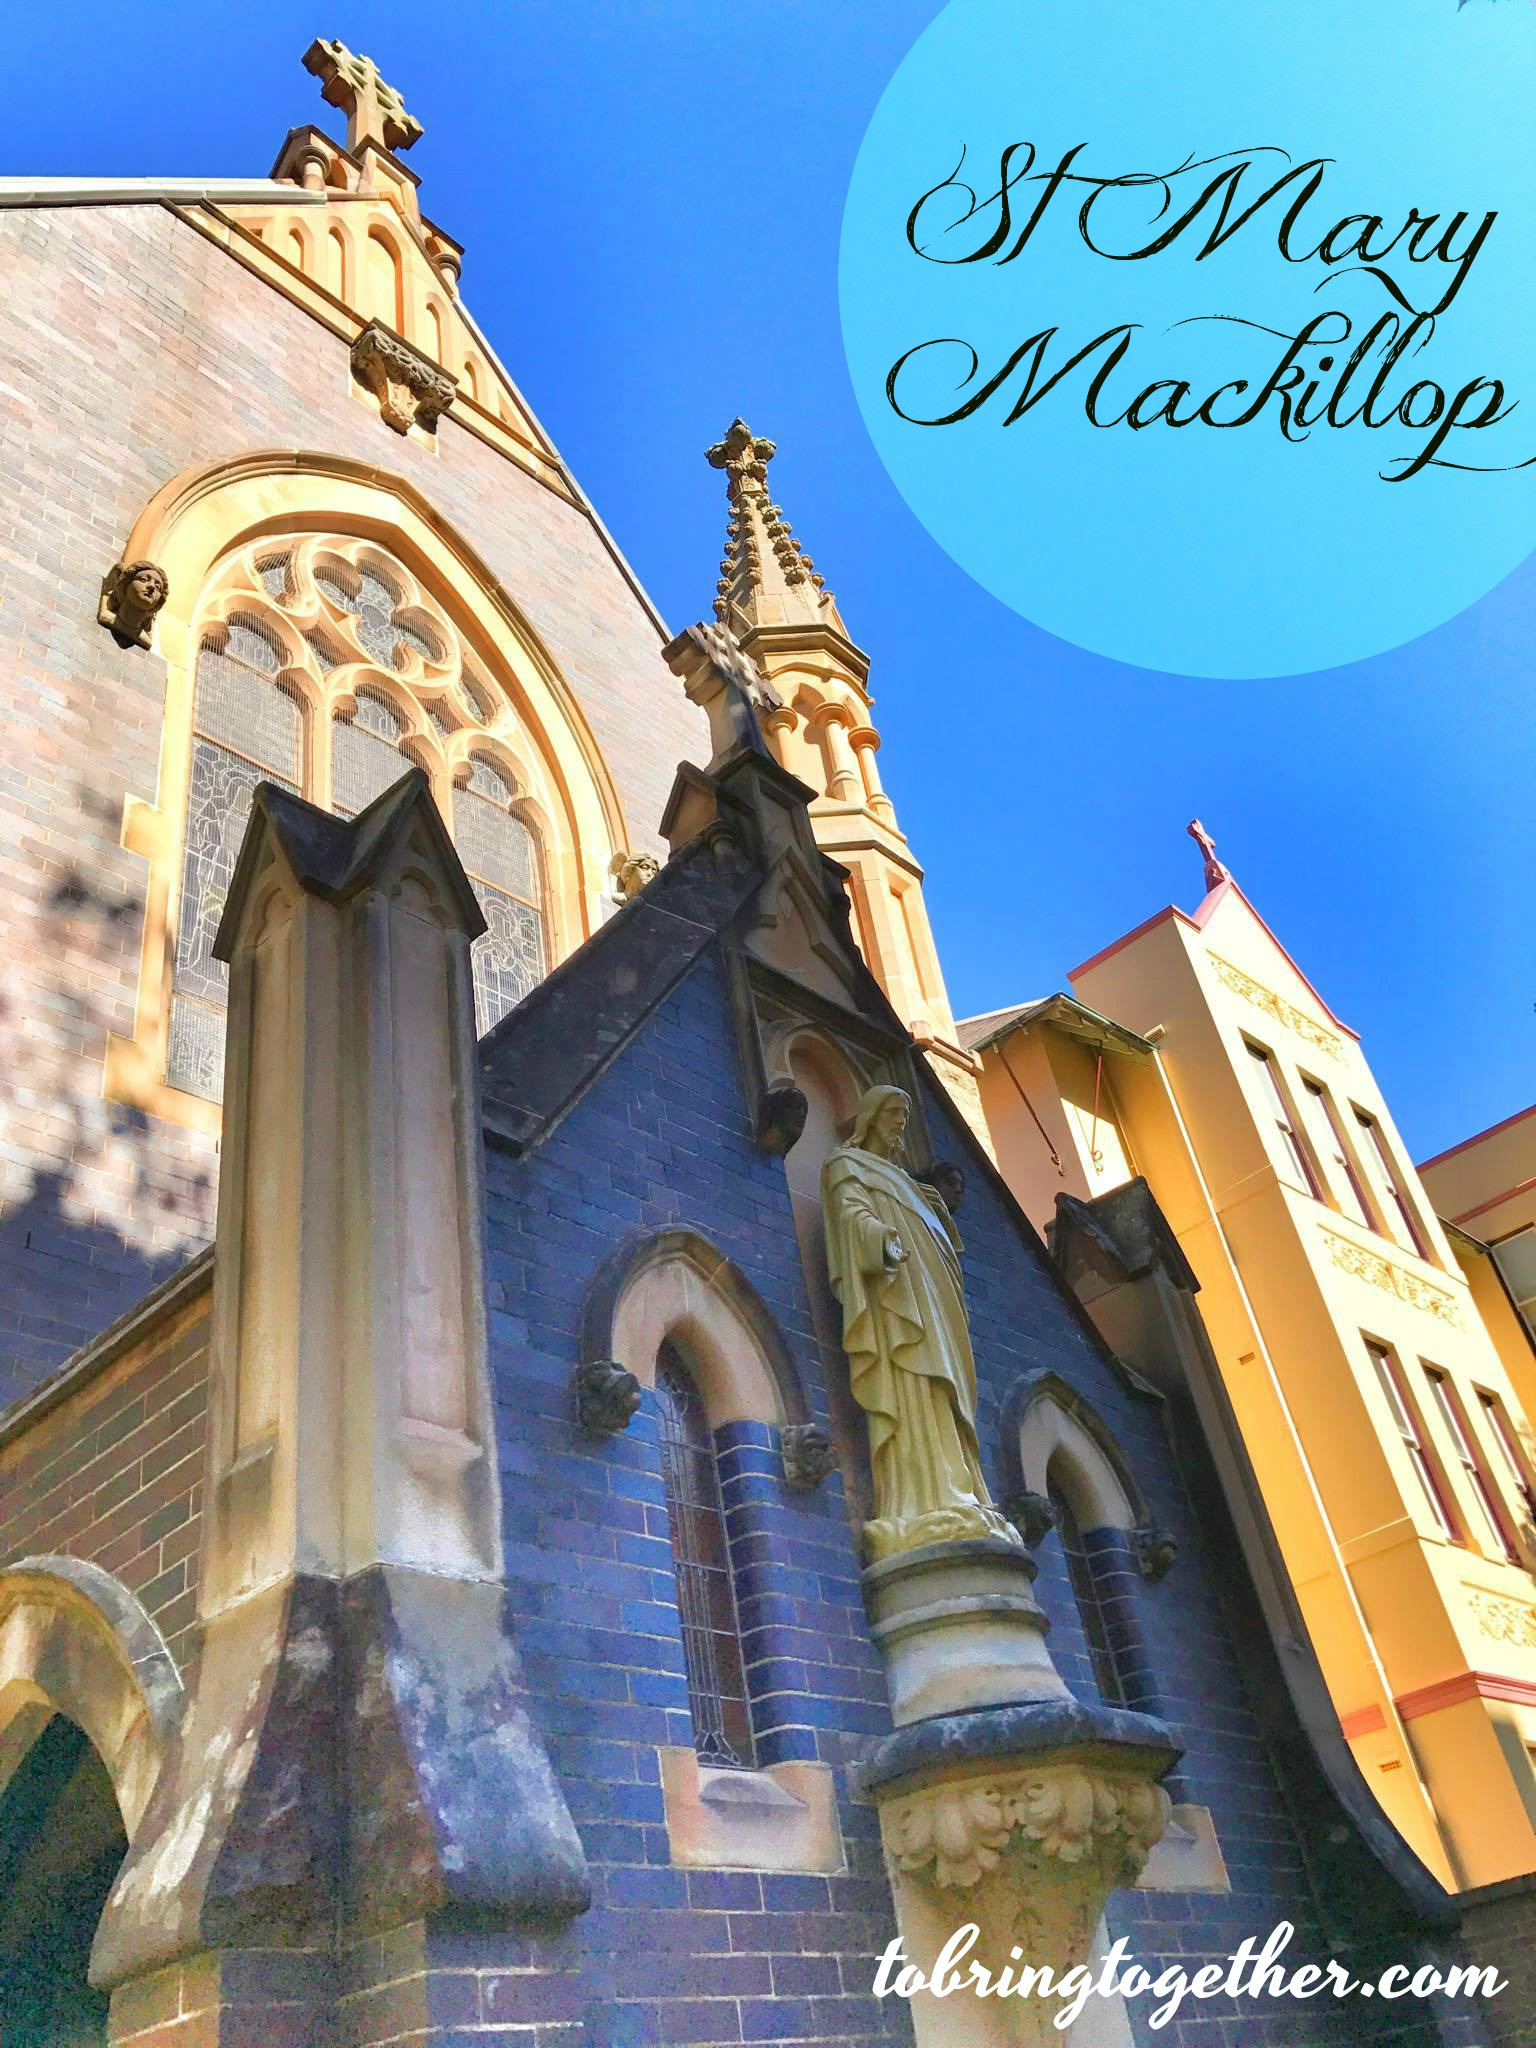 A visit to St Mary Mackillop